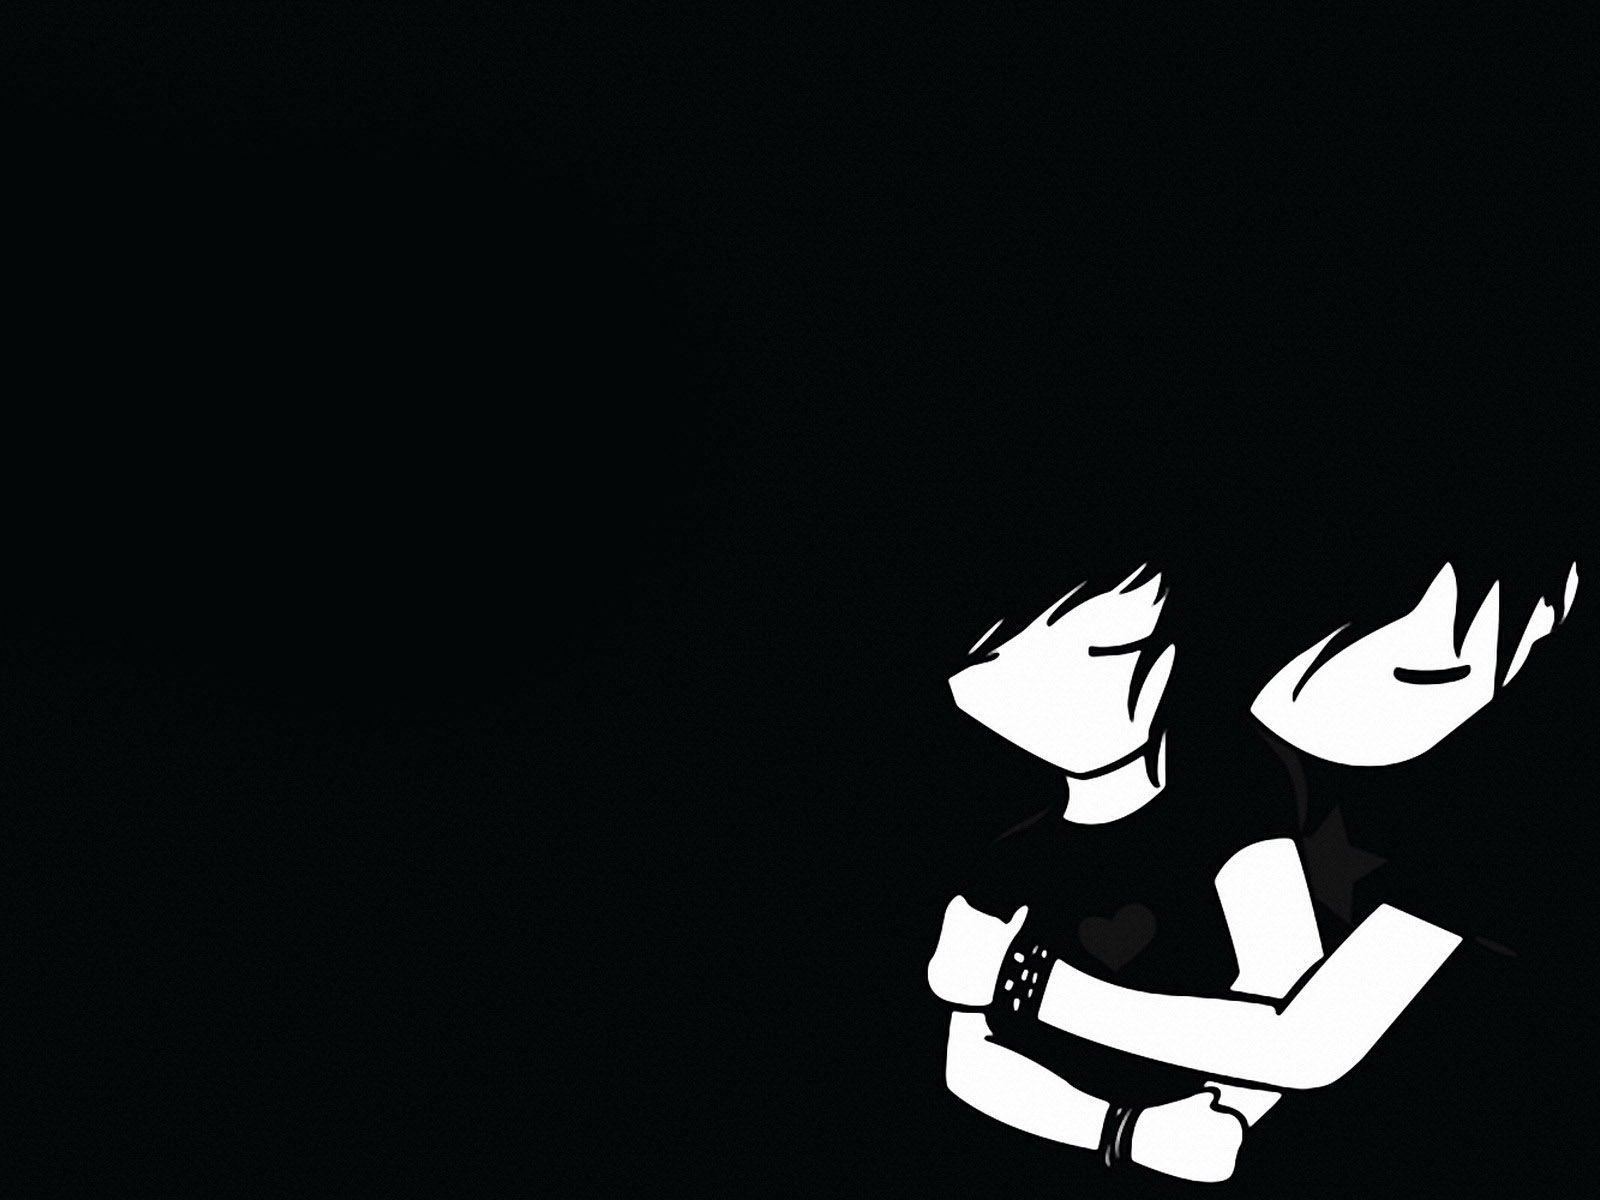 Hd Wallpaper Emo Love couple : Animated coolboys Pics - clipArt Best